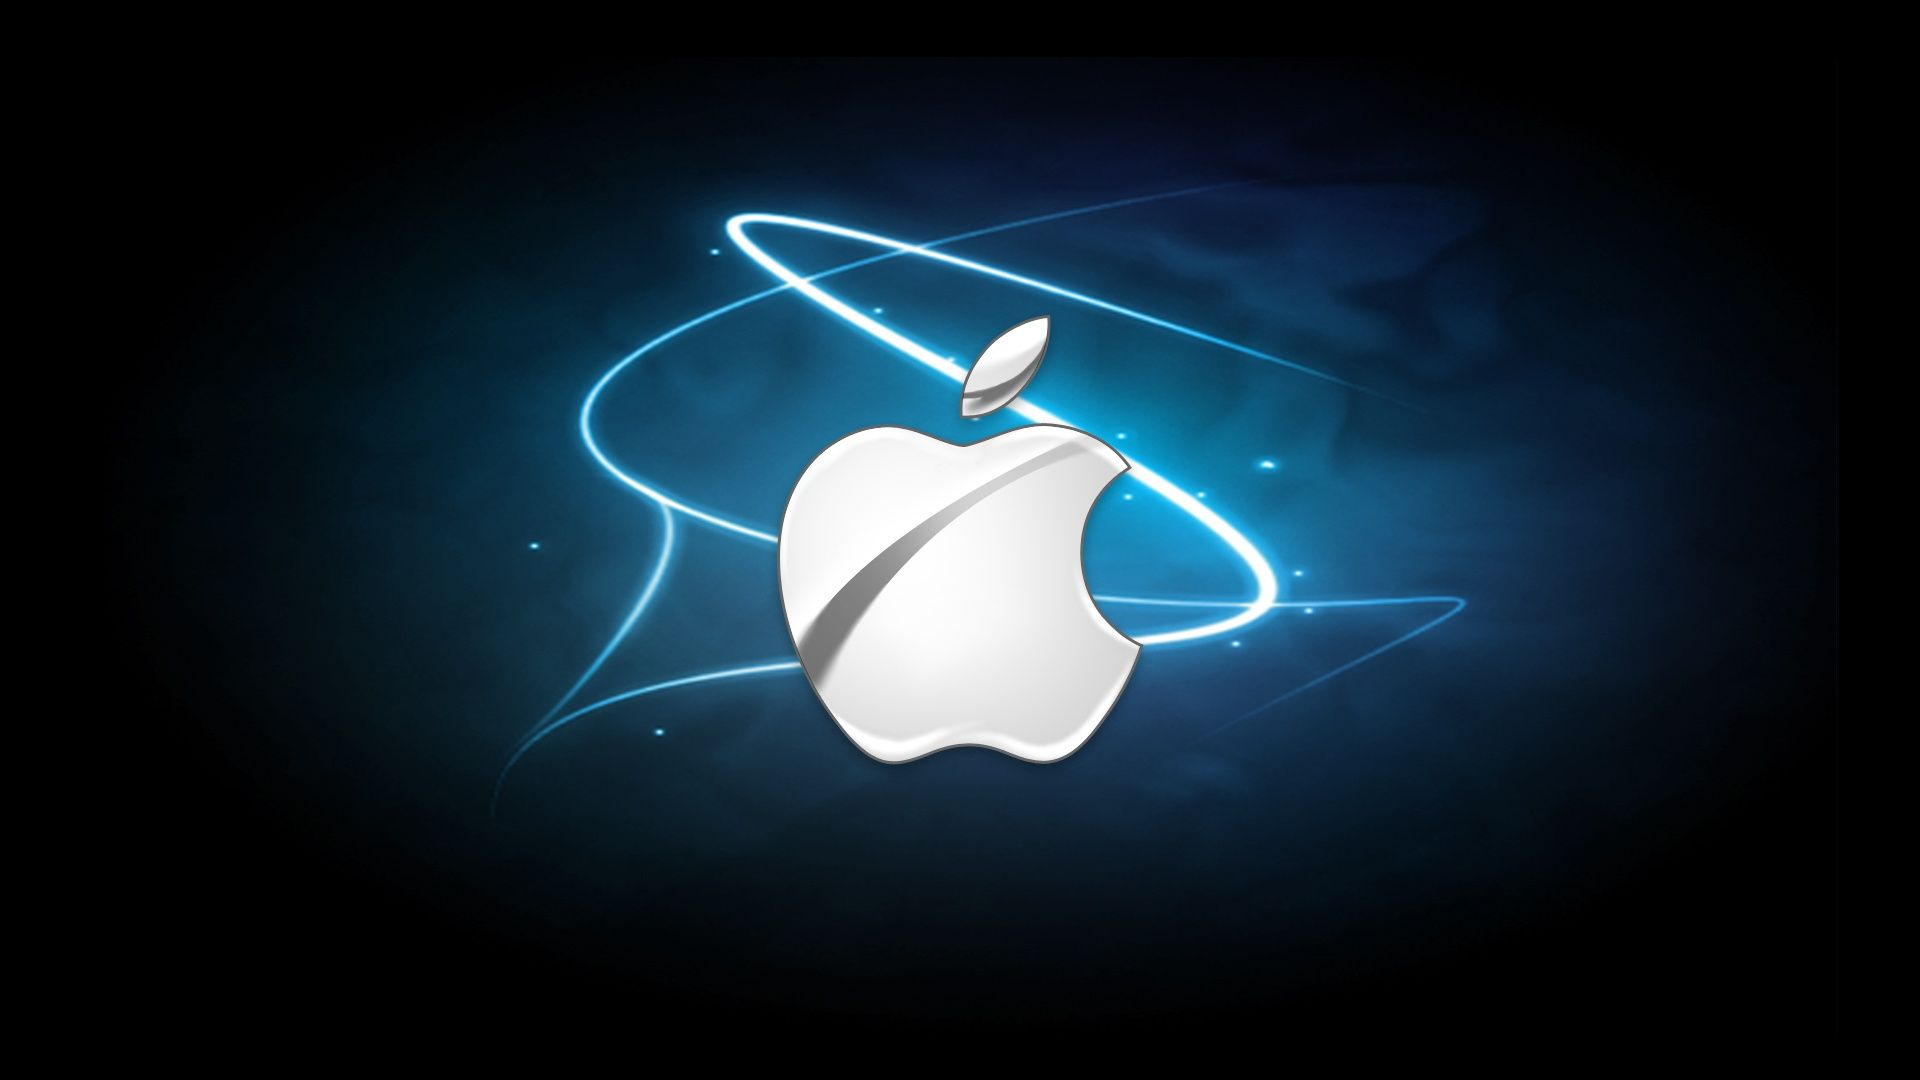 amazing apple hd apple wallpaper 1920x1080